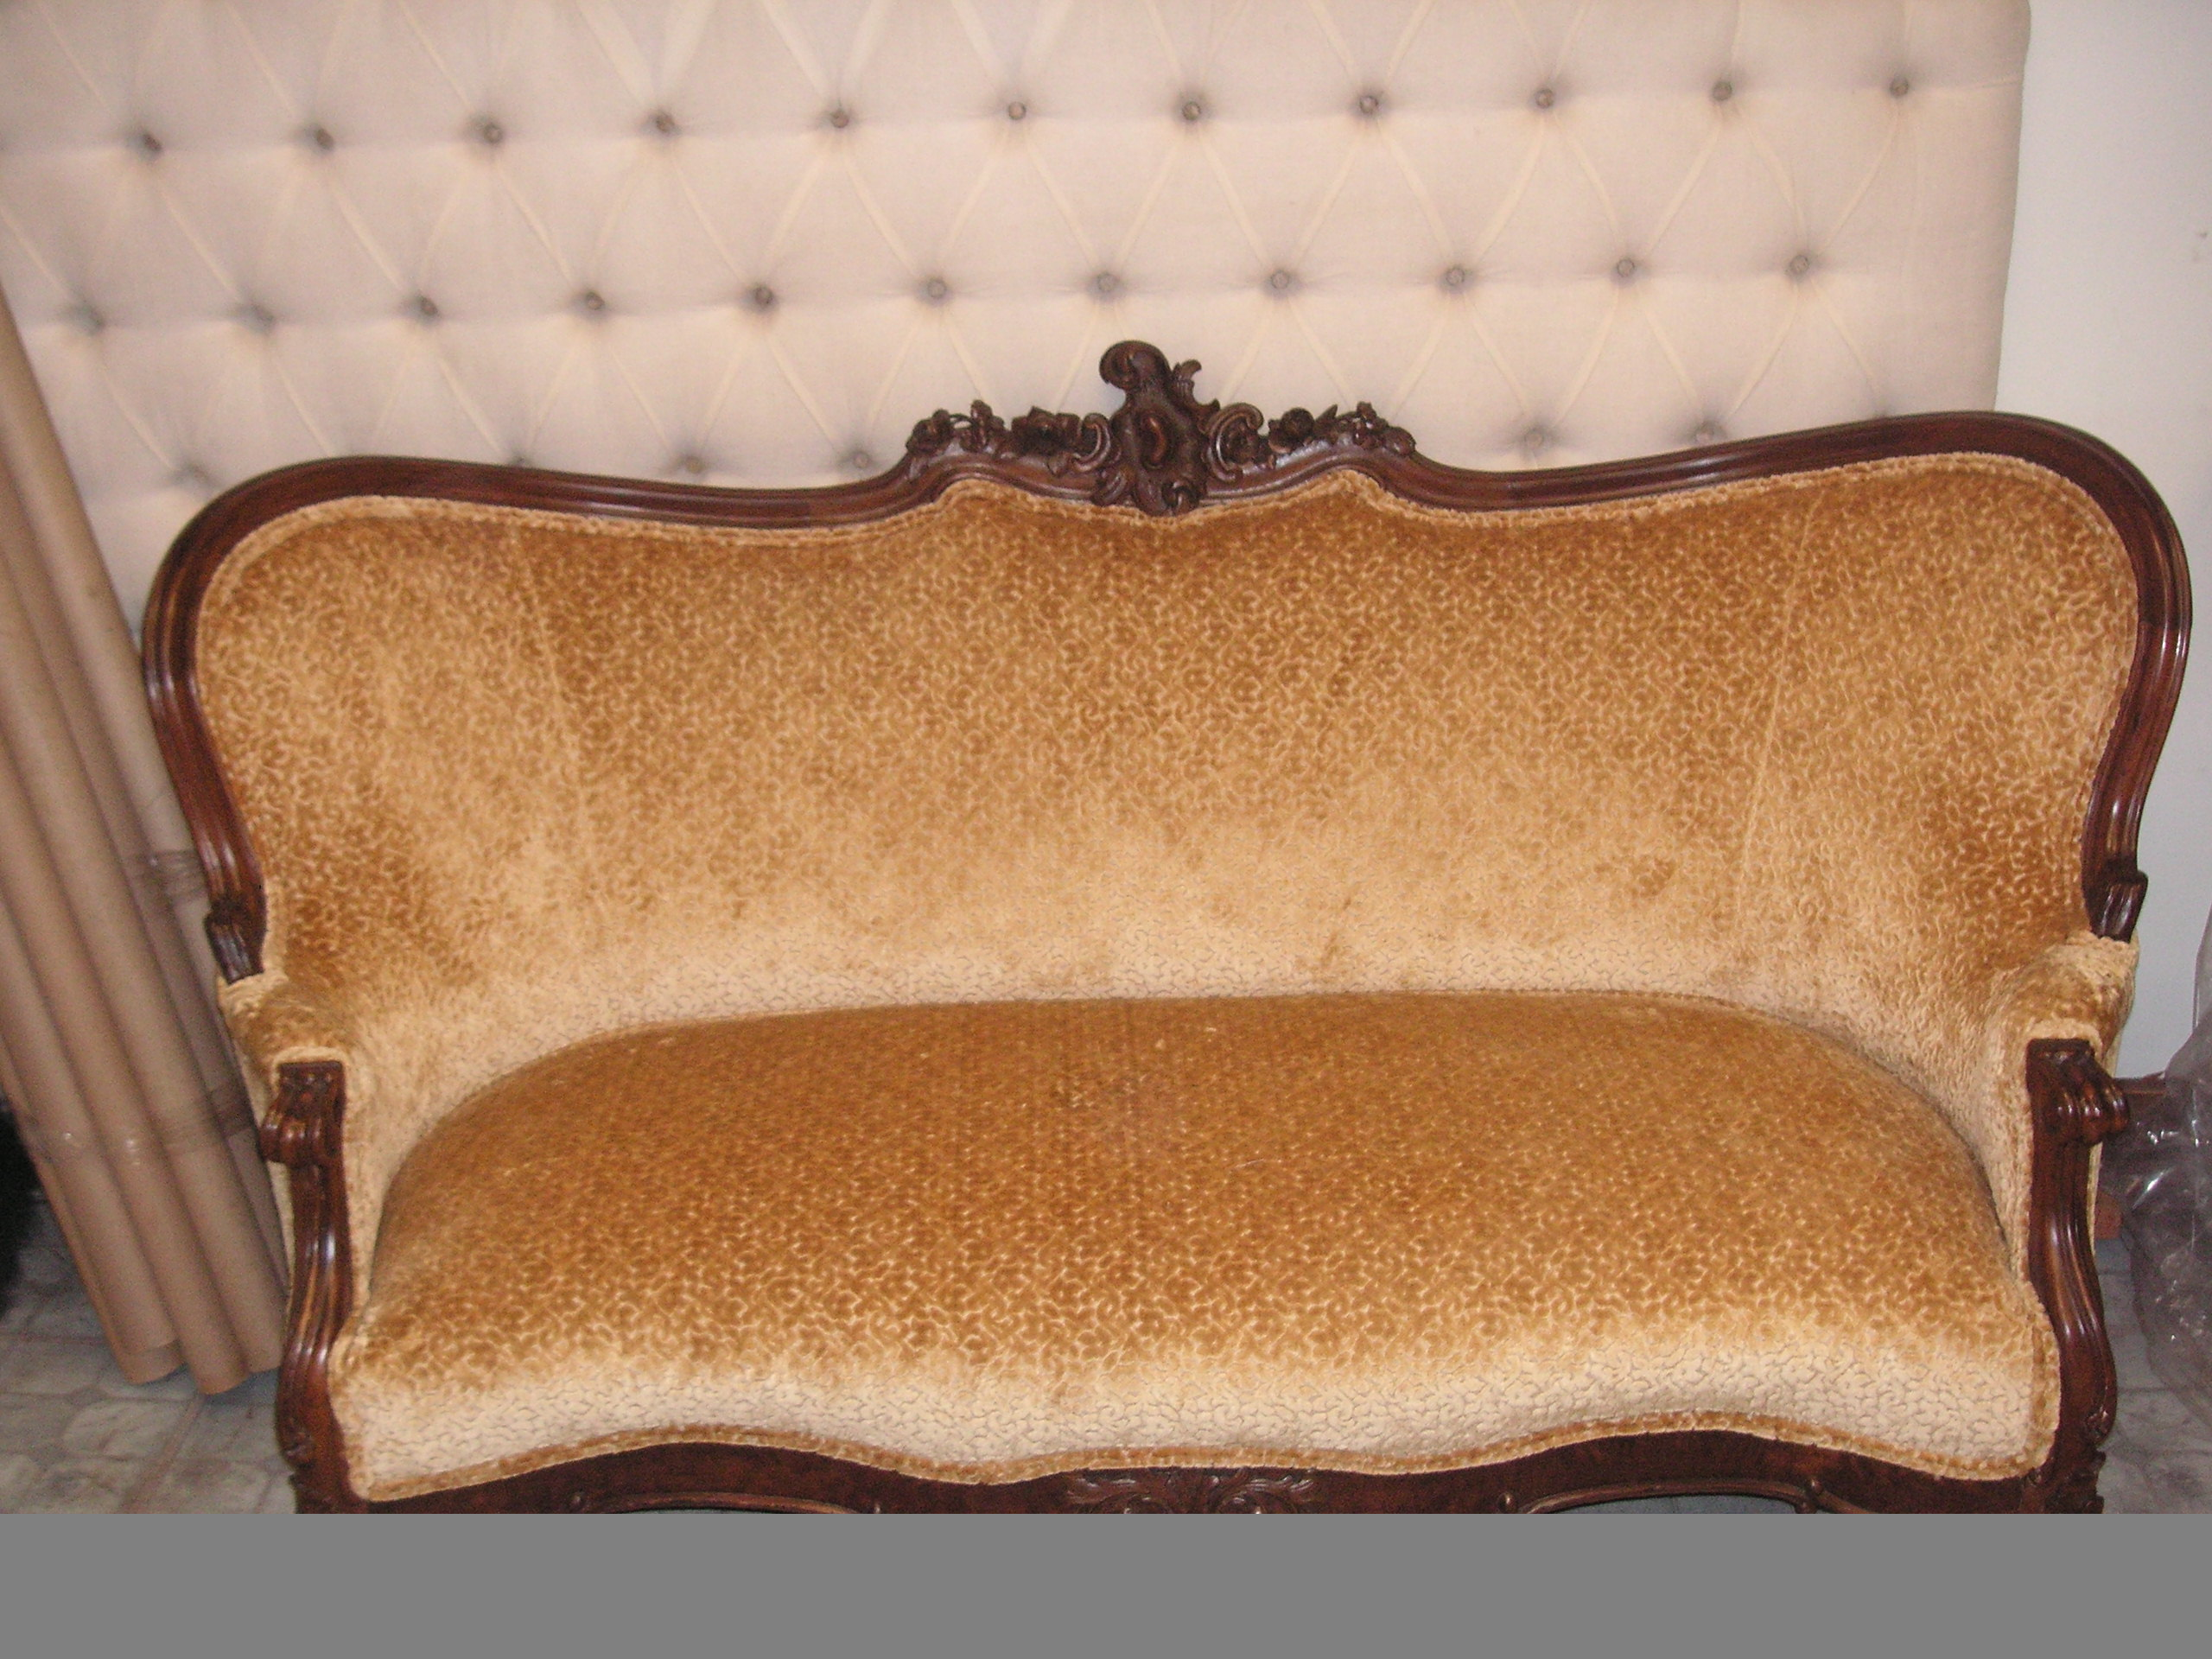 sofa cushion replacement service transitional style table furniture repair